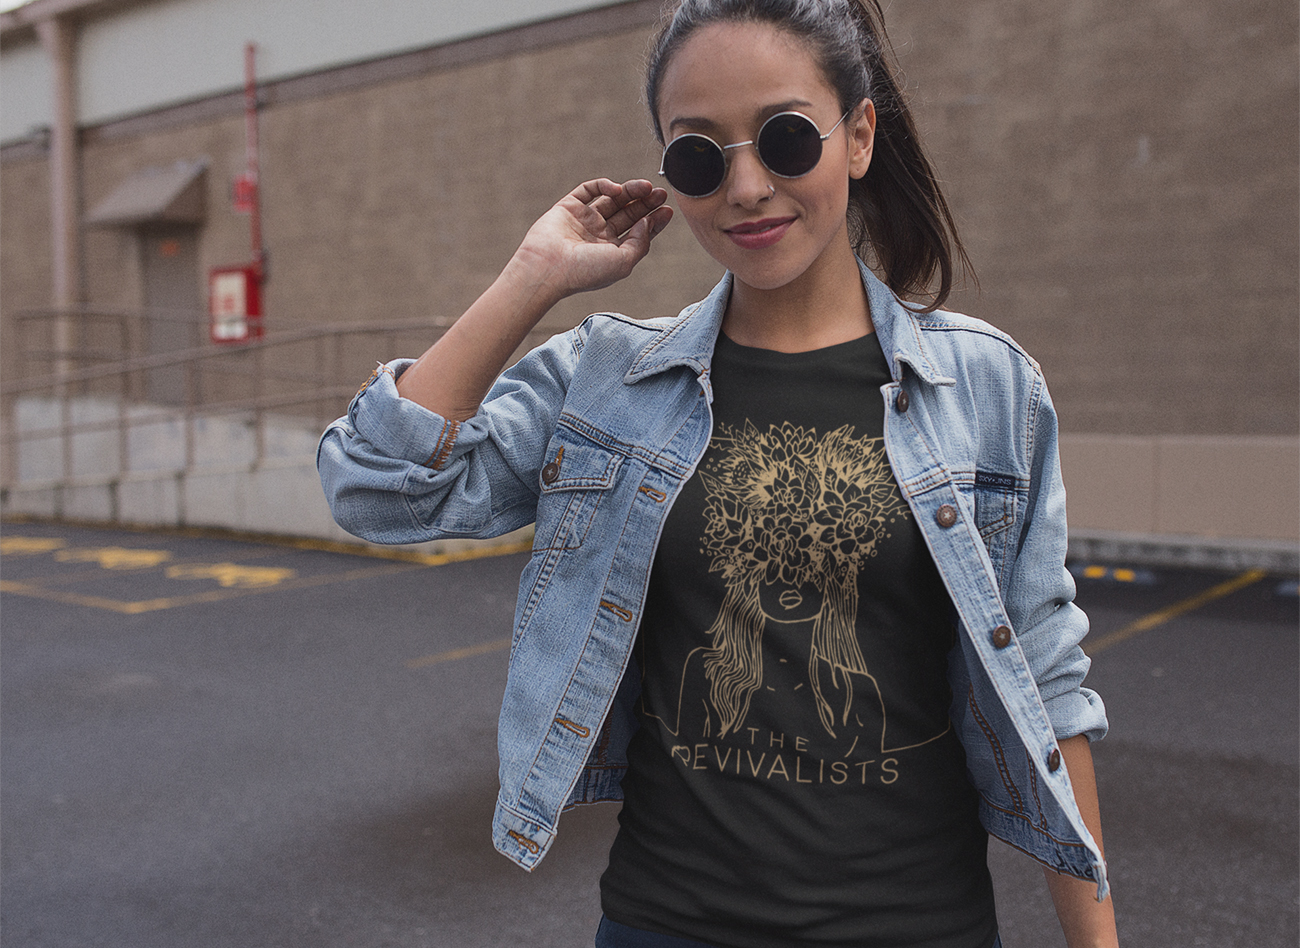 Revivalists Floral Woman Tee